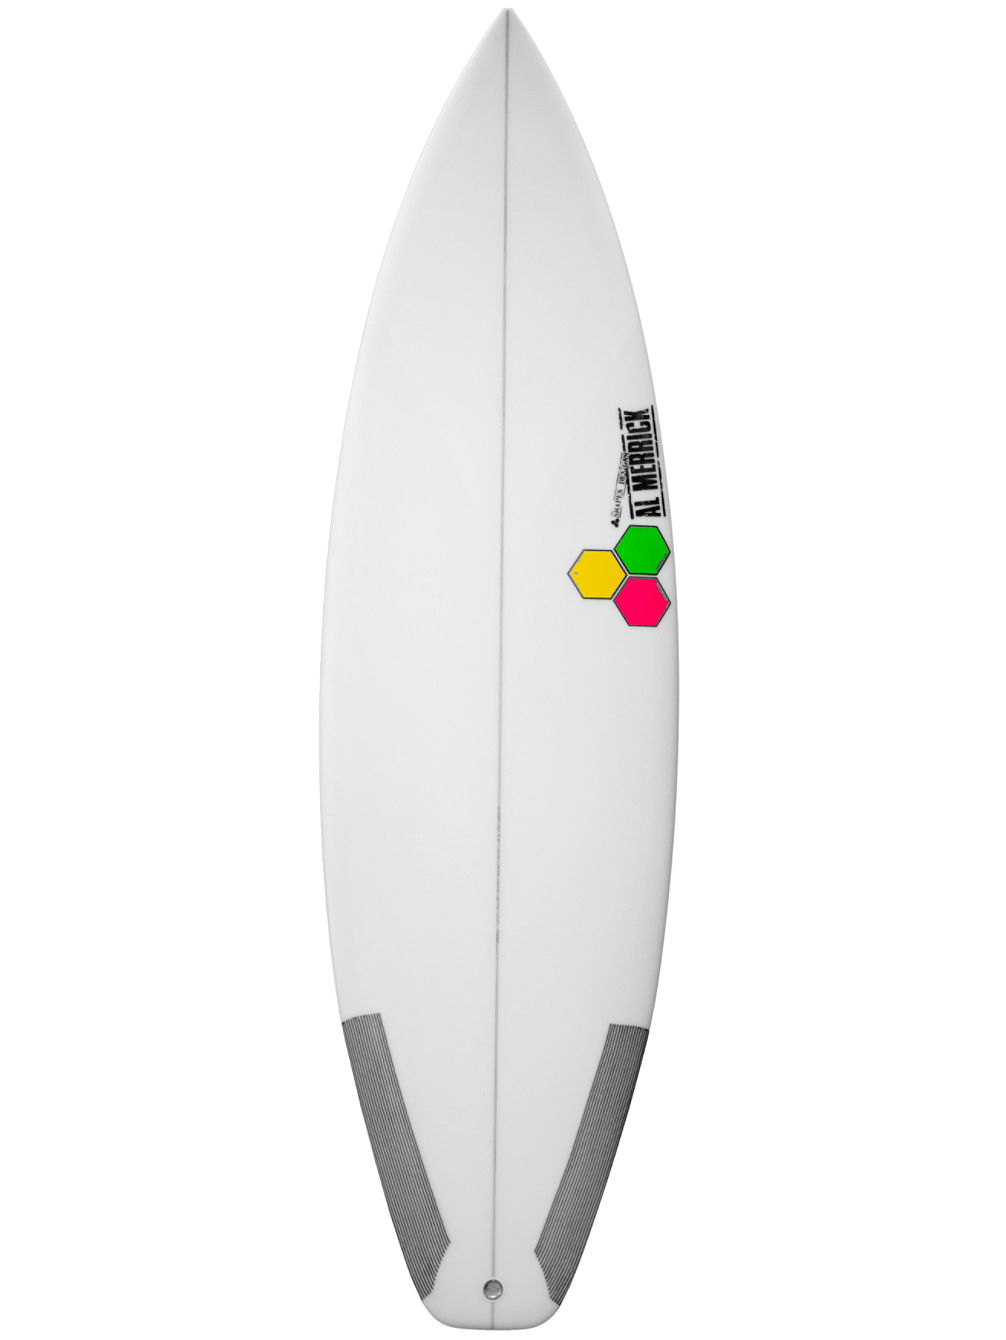 Channel Island New Flyer 5'8 Surfboard